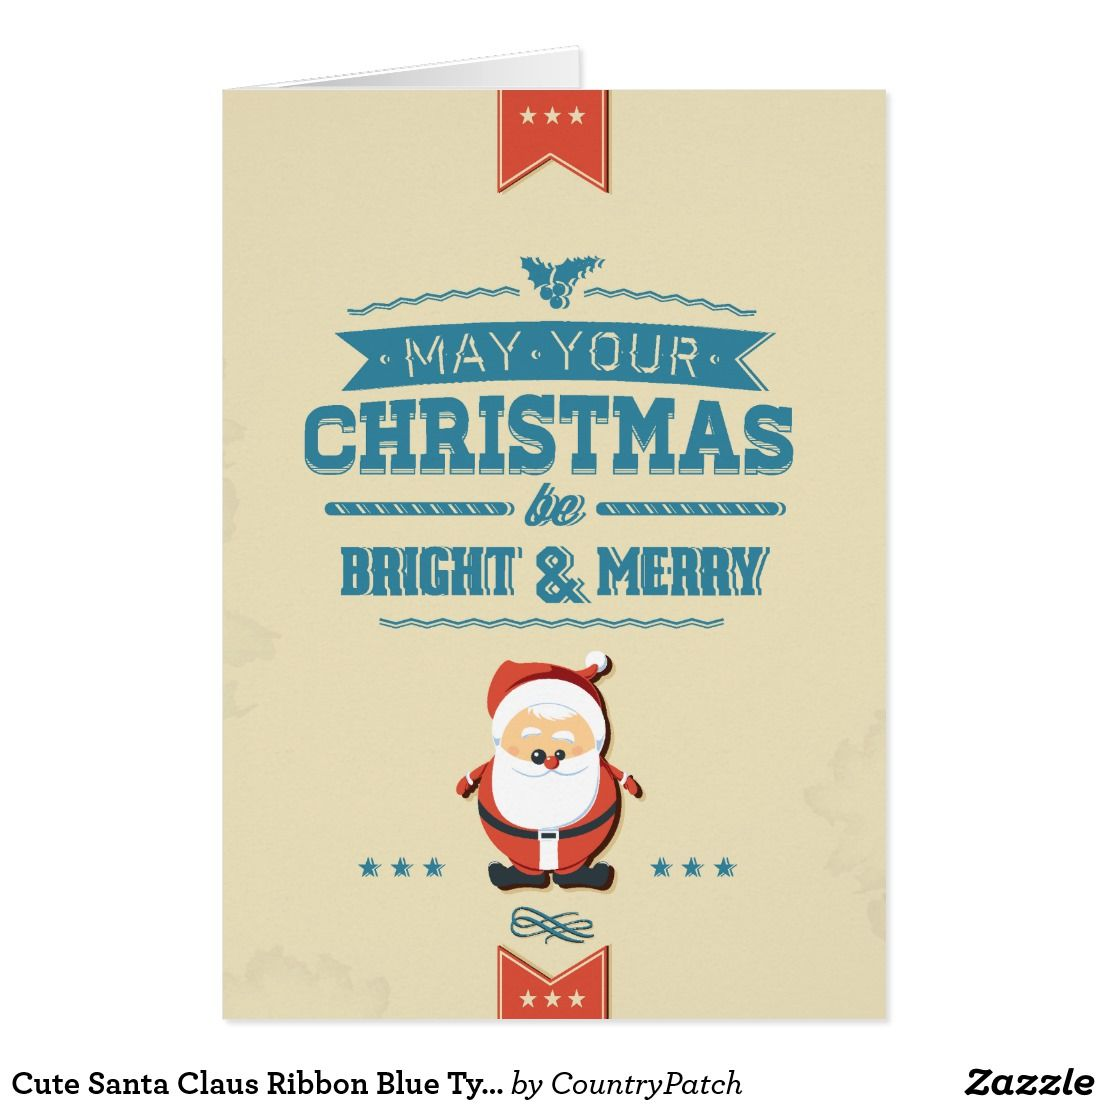 Cute Santa Claus Ribbon Blue Typographic Custom Christmas